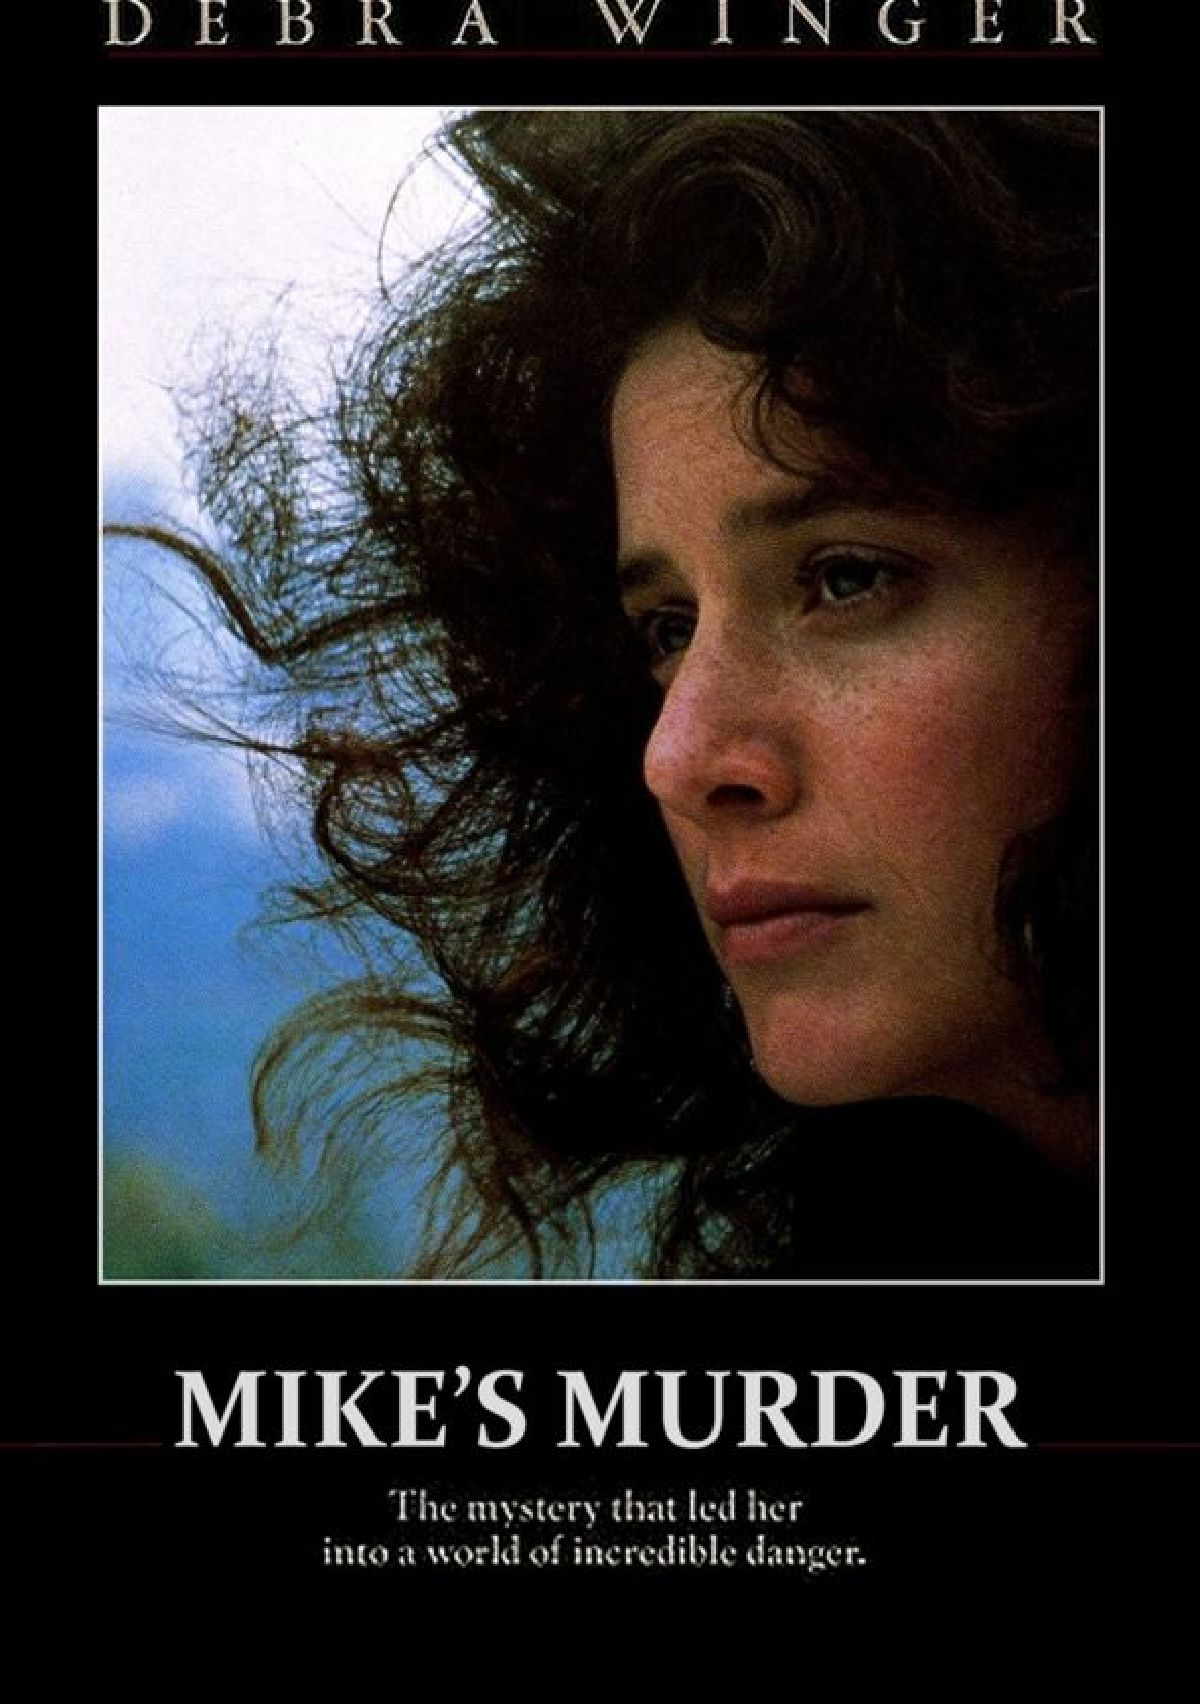 'Mike's Murder' movie poster